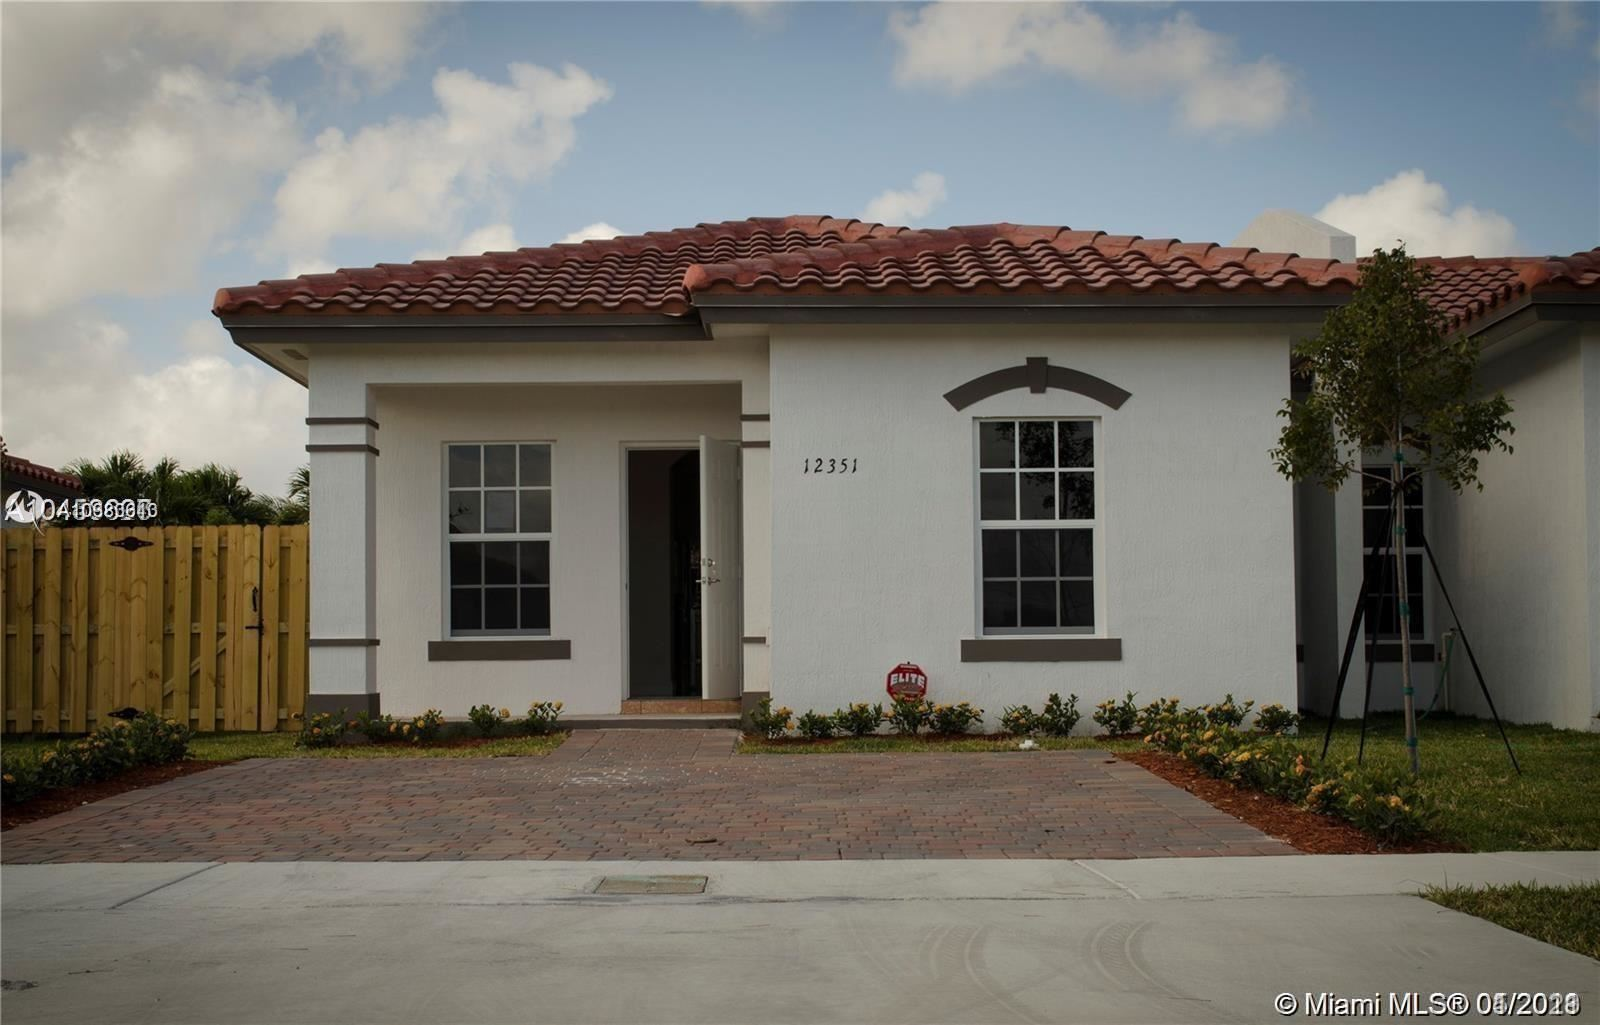 12310 SW 214th Ter, Miami, FL 33177 - #: A10983613